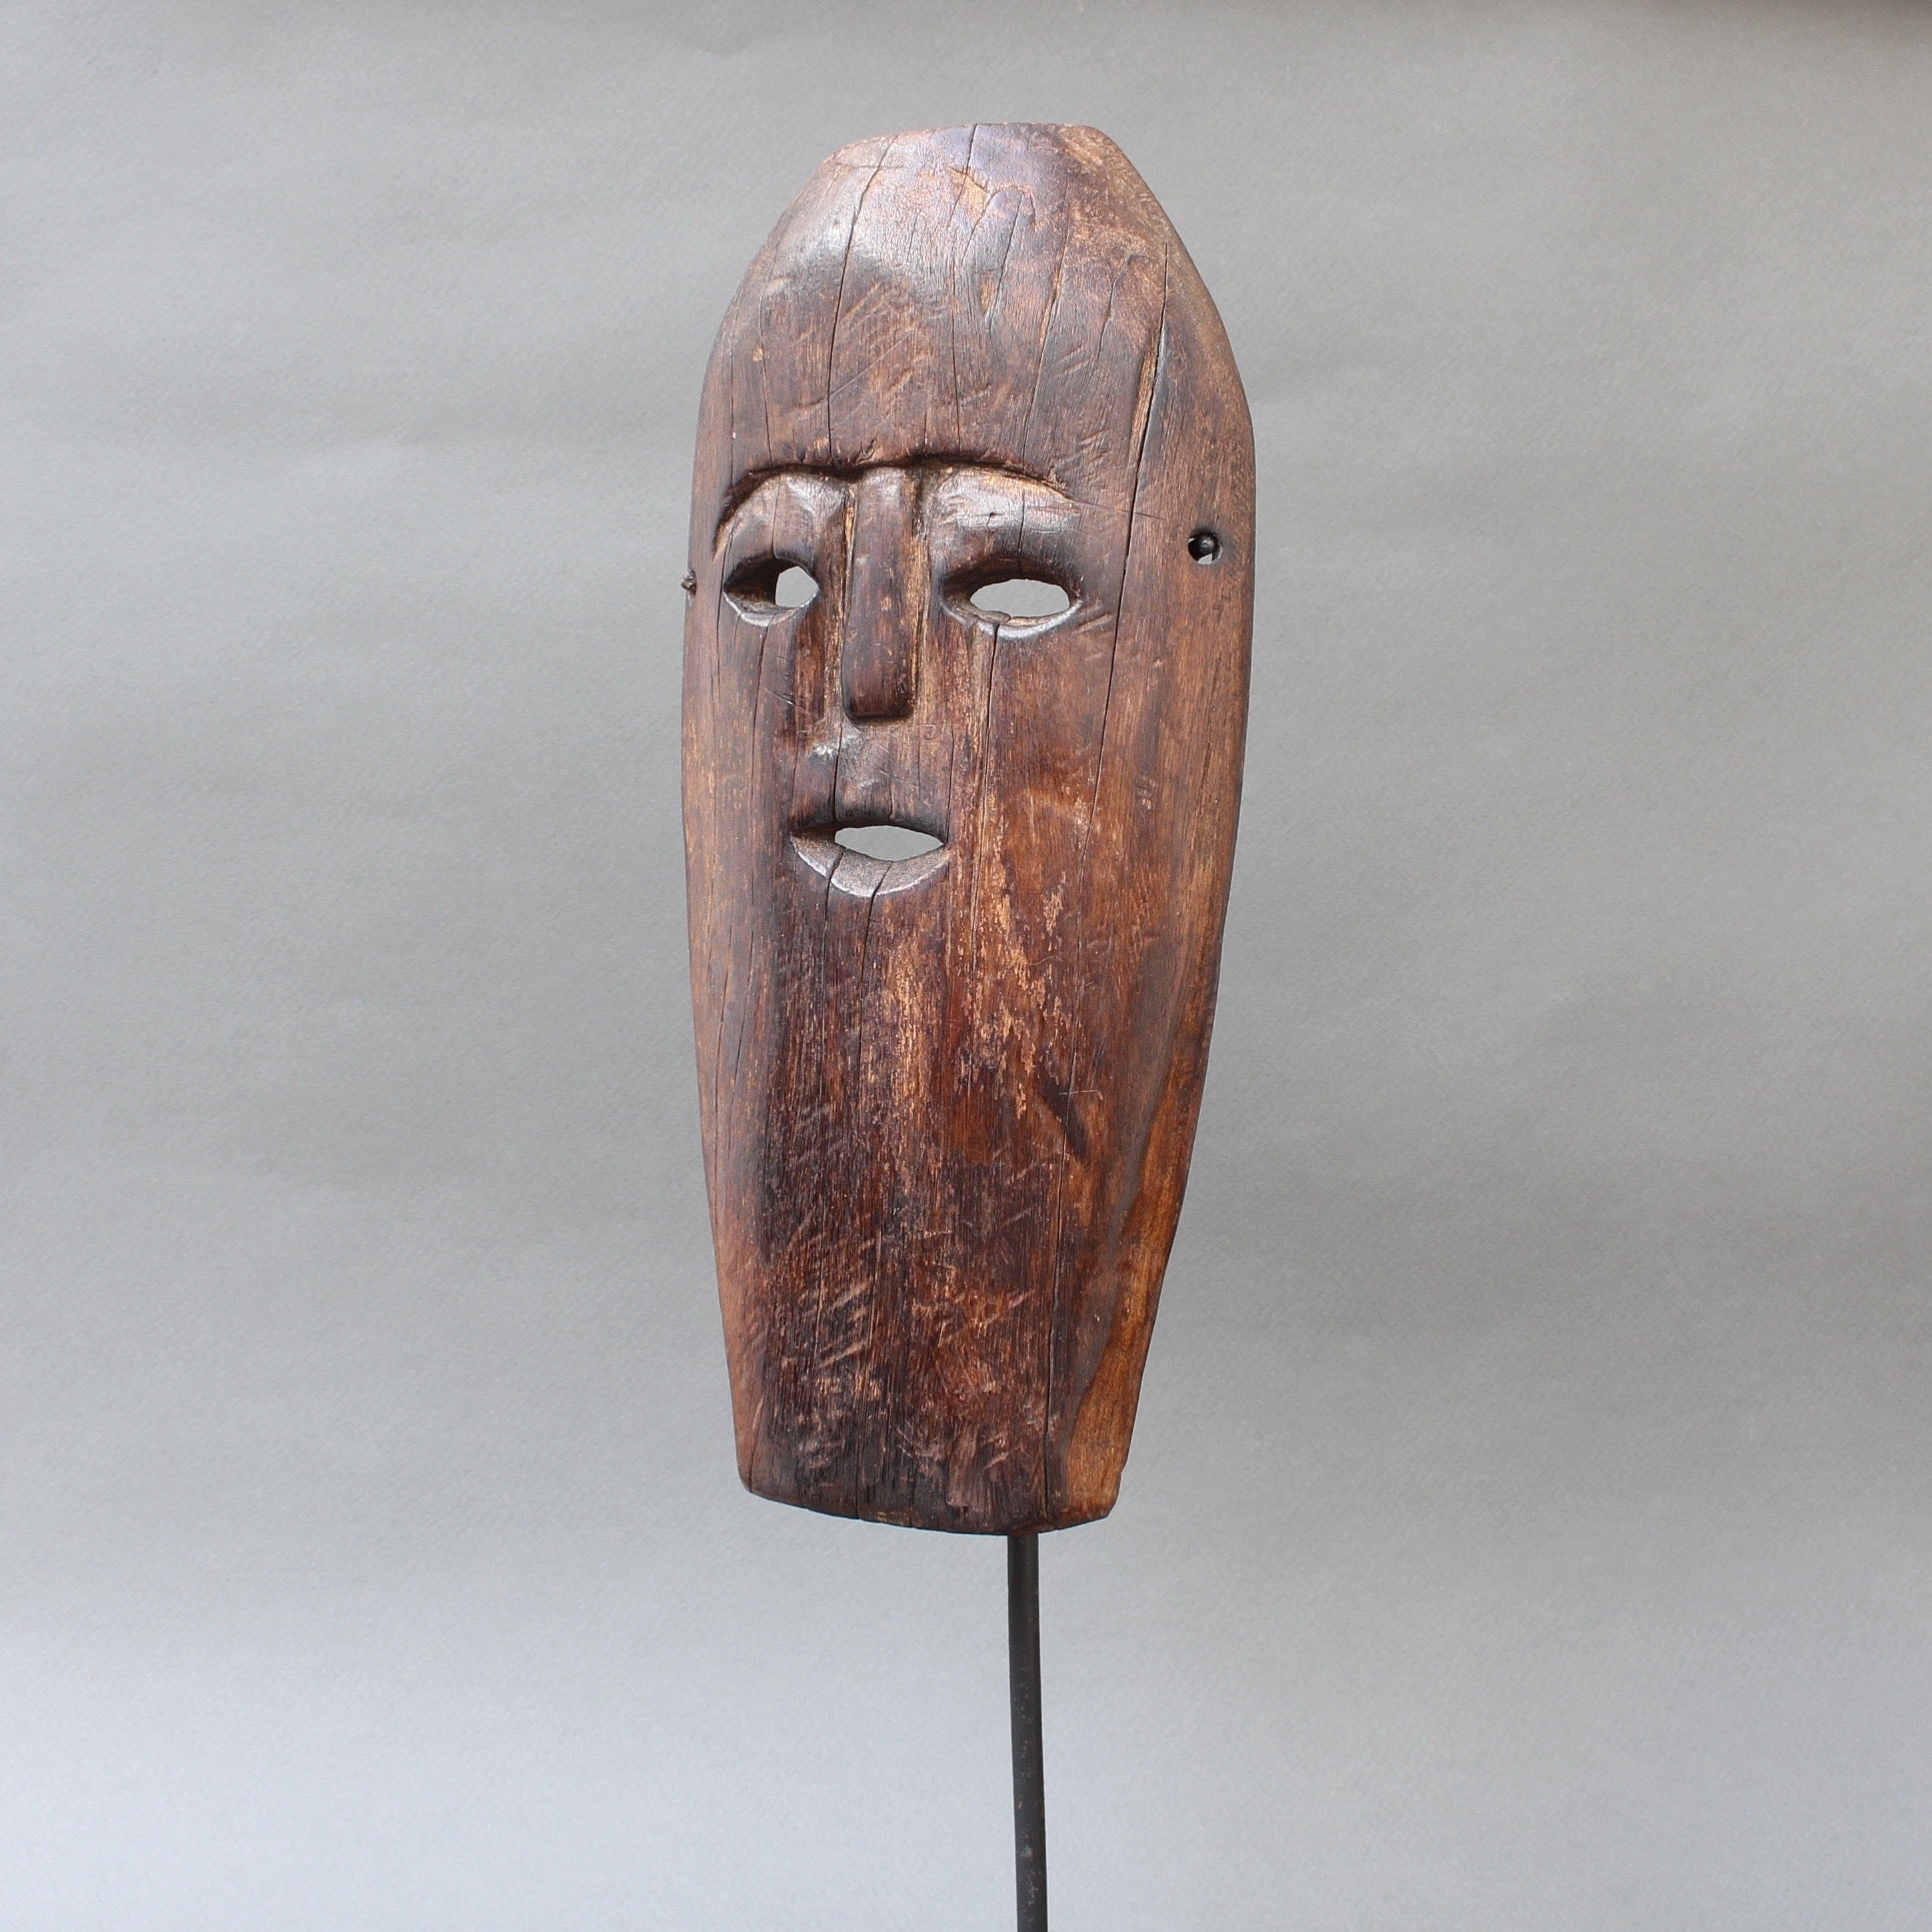 Sculpted Wooden Traditional Mask from Timor Island, Indonesia (circa 1960s - 1970s)